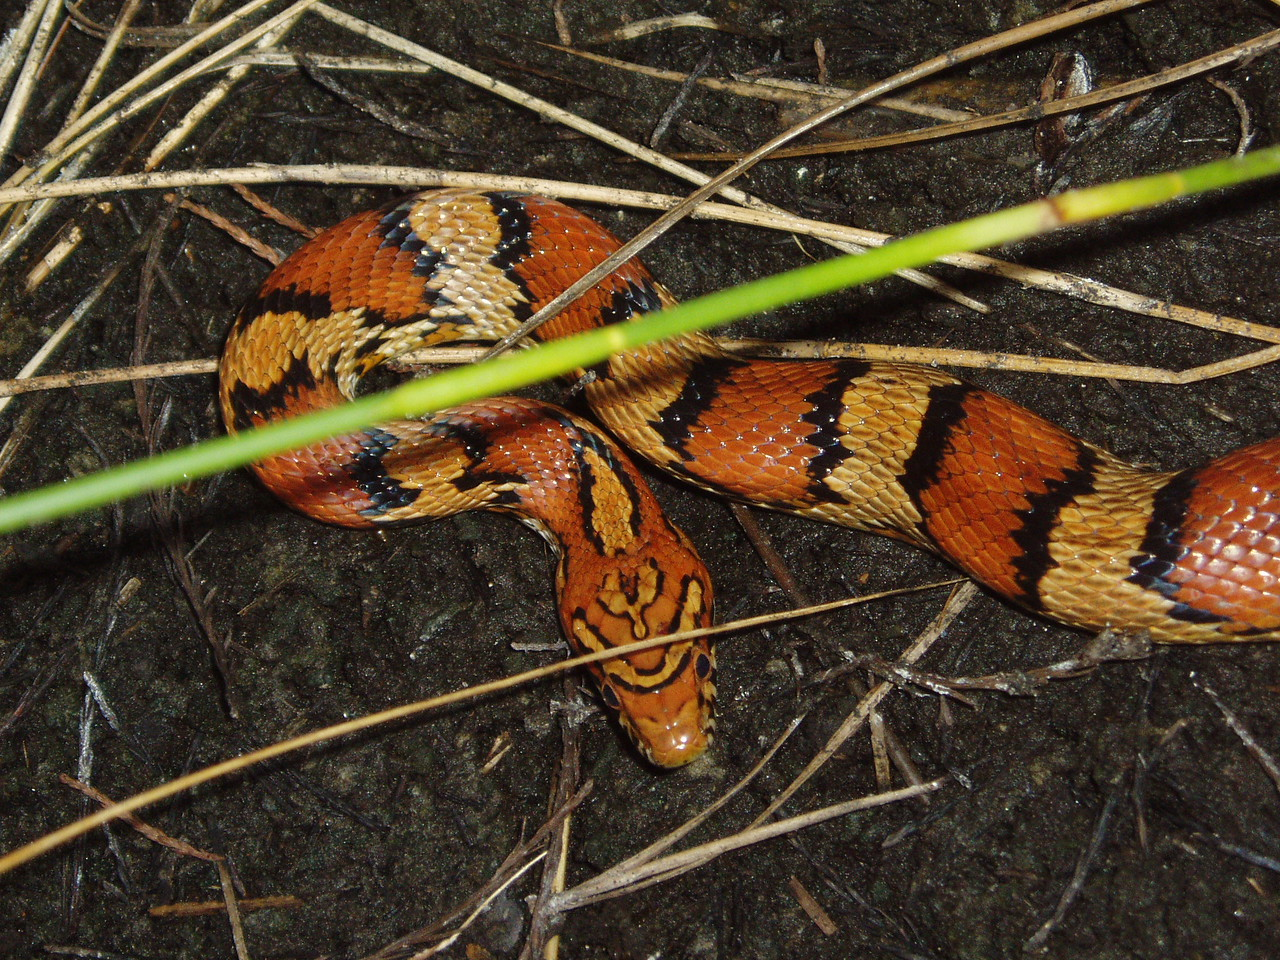 Corn snake<br /> Wading a cypress dome<br /> PHOTO CREDIT: Robert Coveney / Florida Trail Association